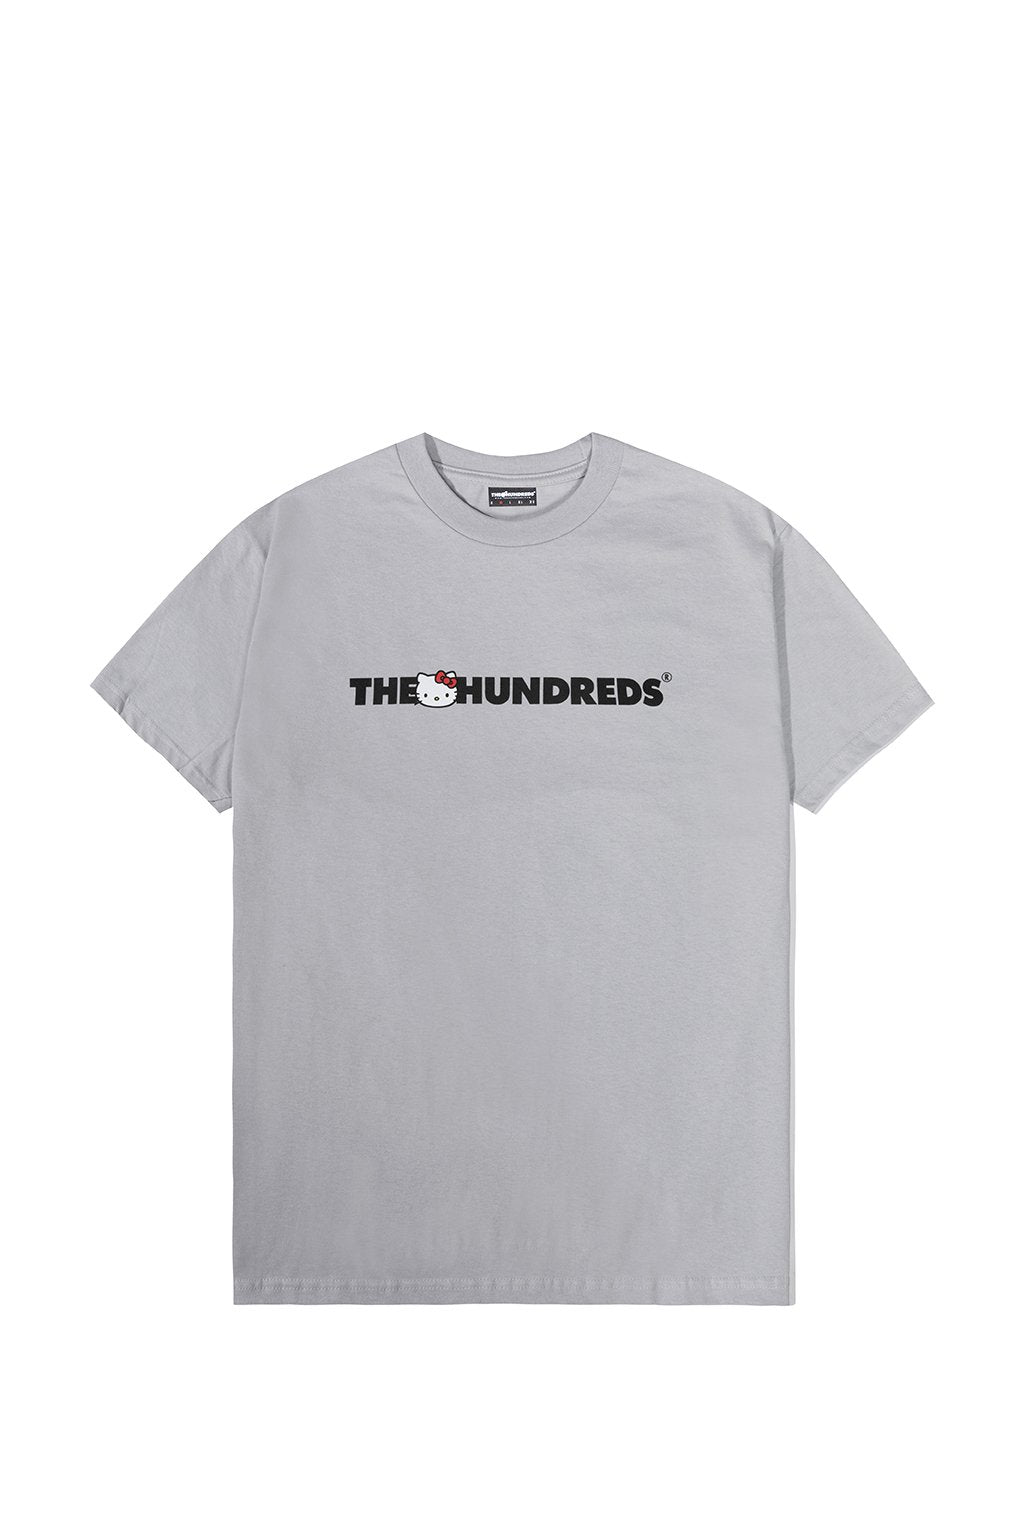 The Hundreds x Sanrio Kitty Bar Logo T-Shirt in Silver xld